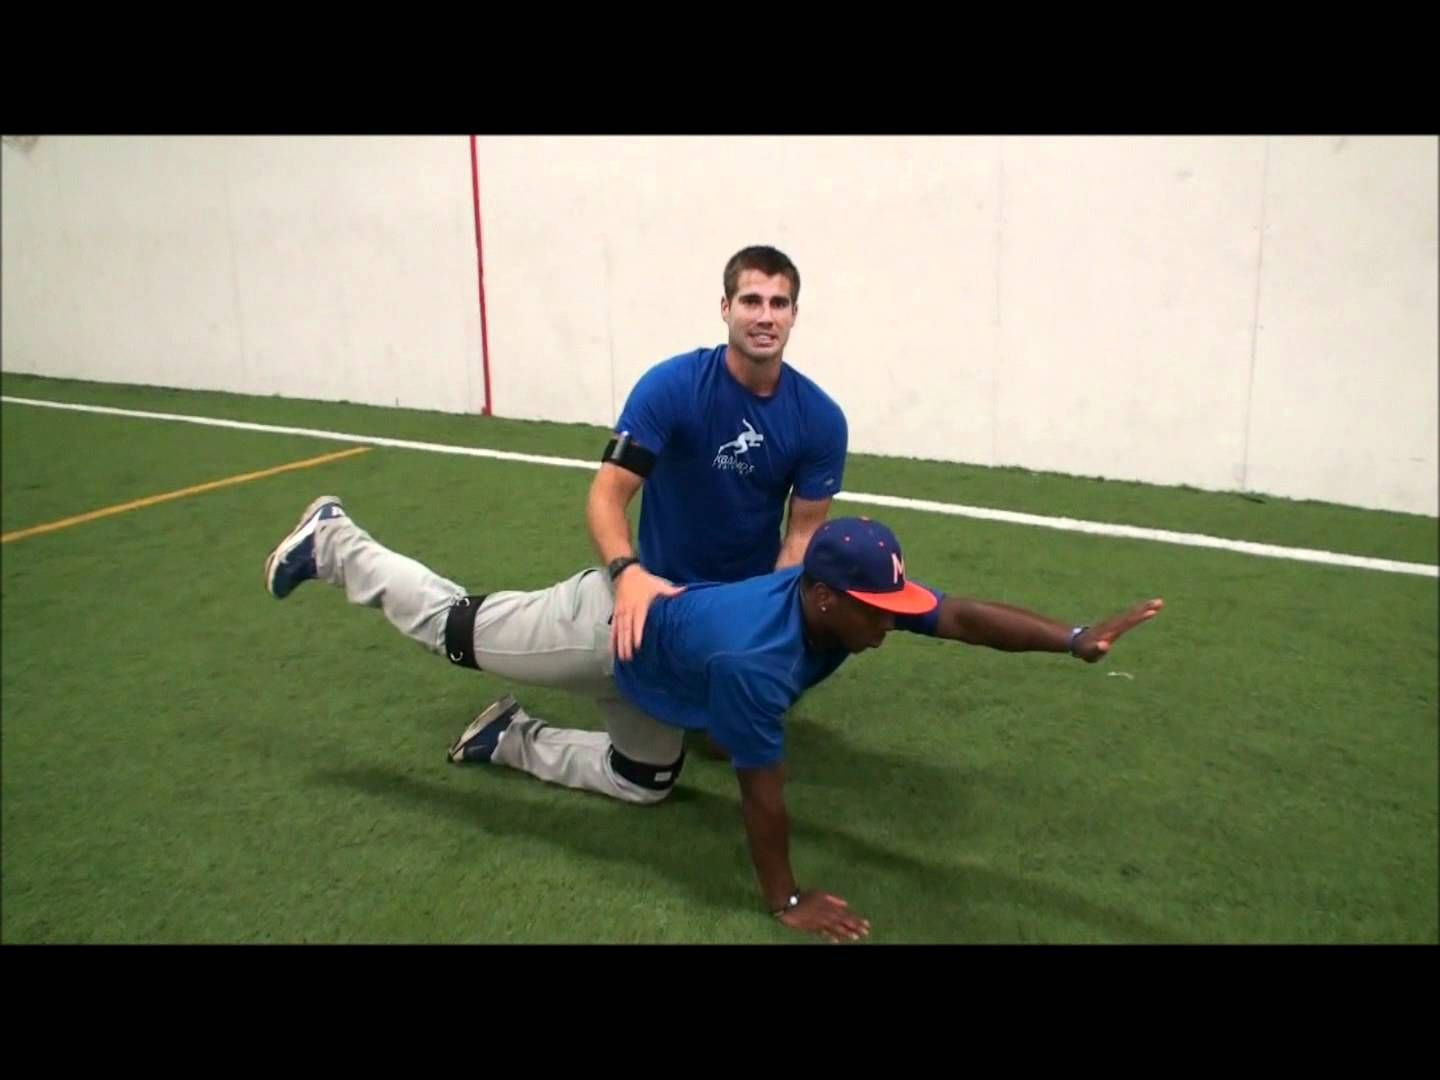 an rmt club baseball training exercise that combines a directional